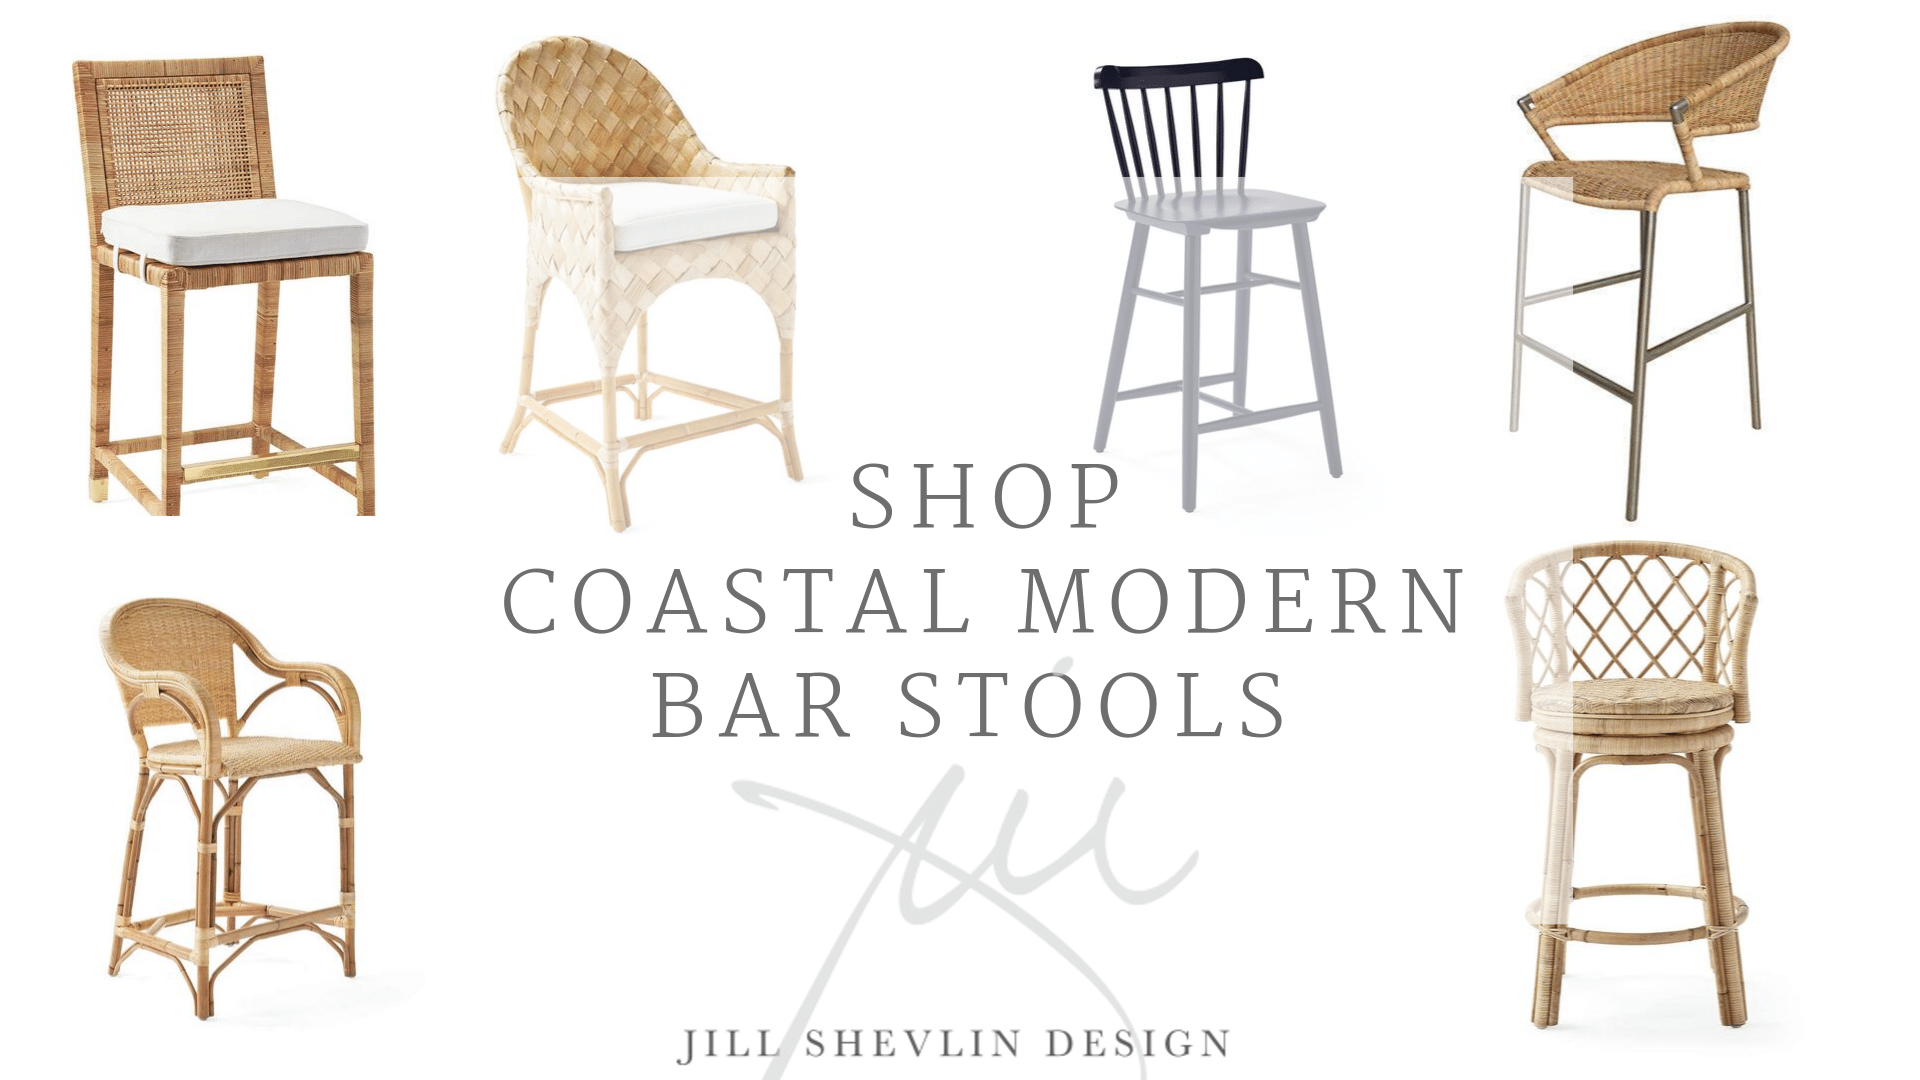 Coastal Modern Bar Stools Home Decor and FurnitureJill Shevlin Design